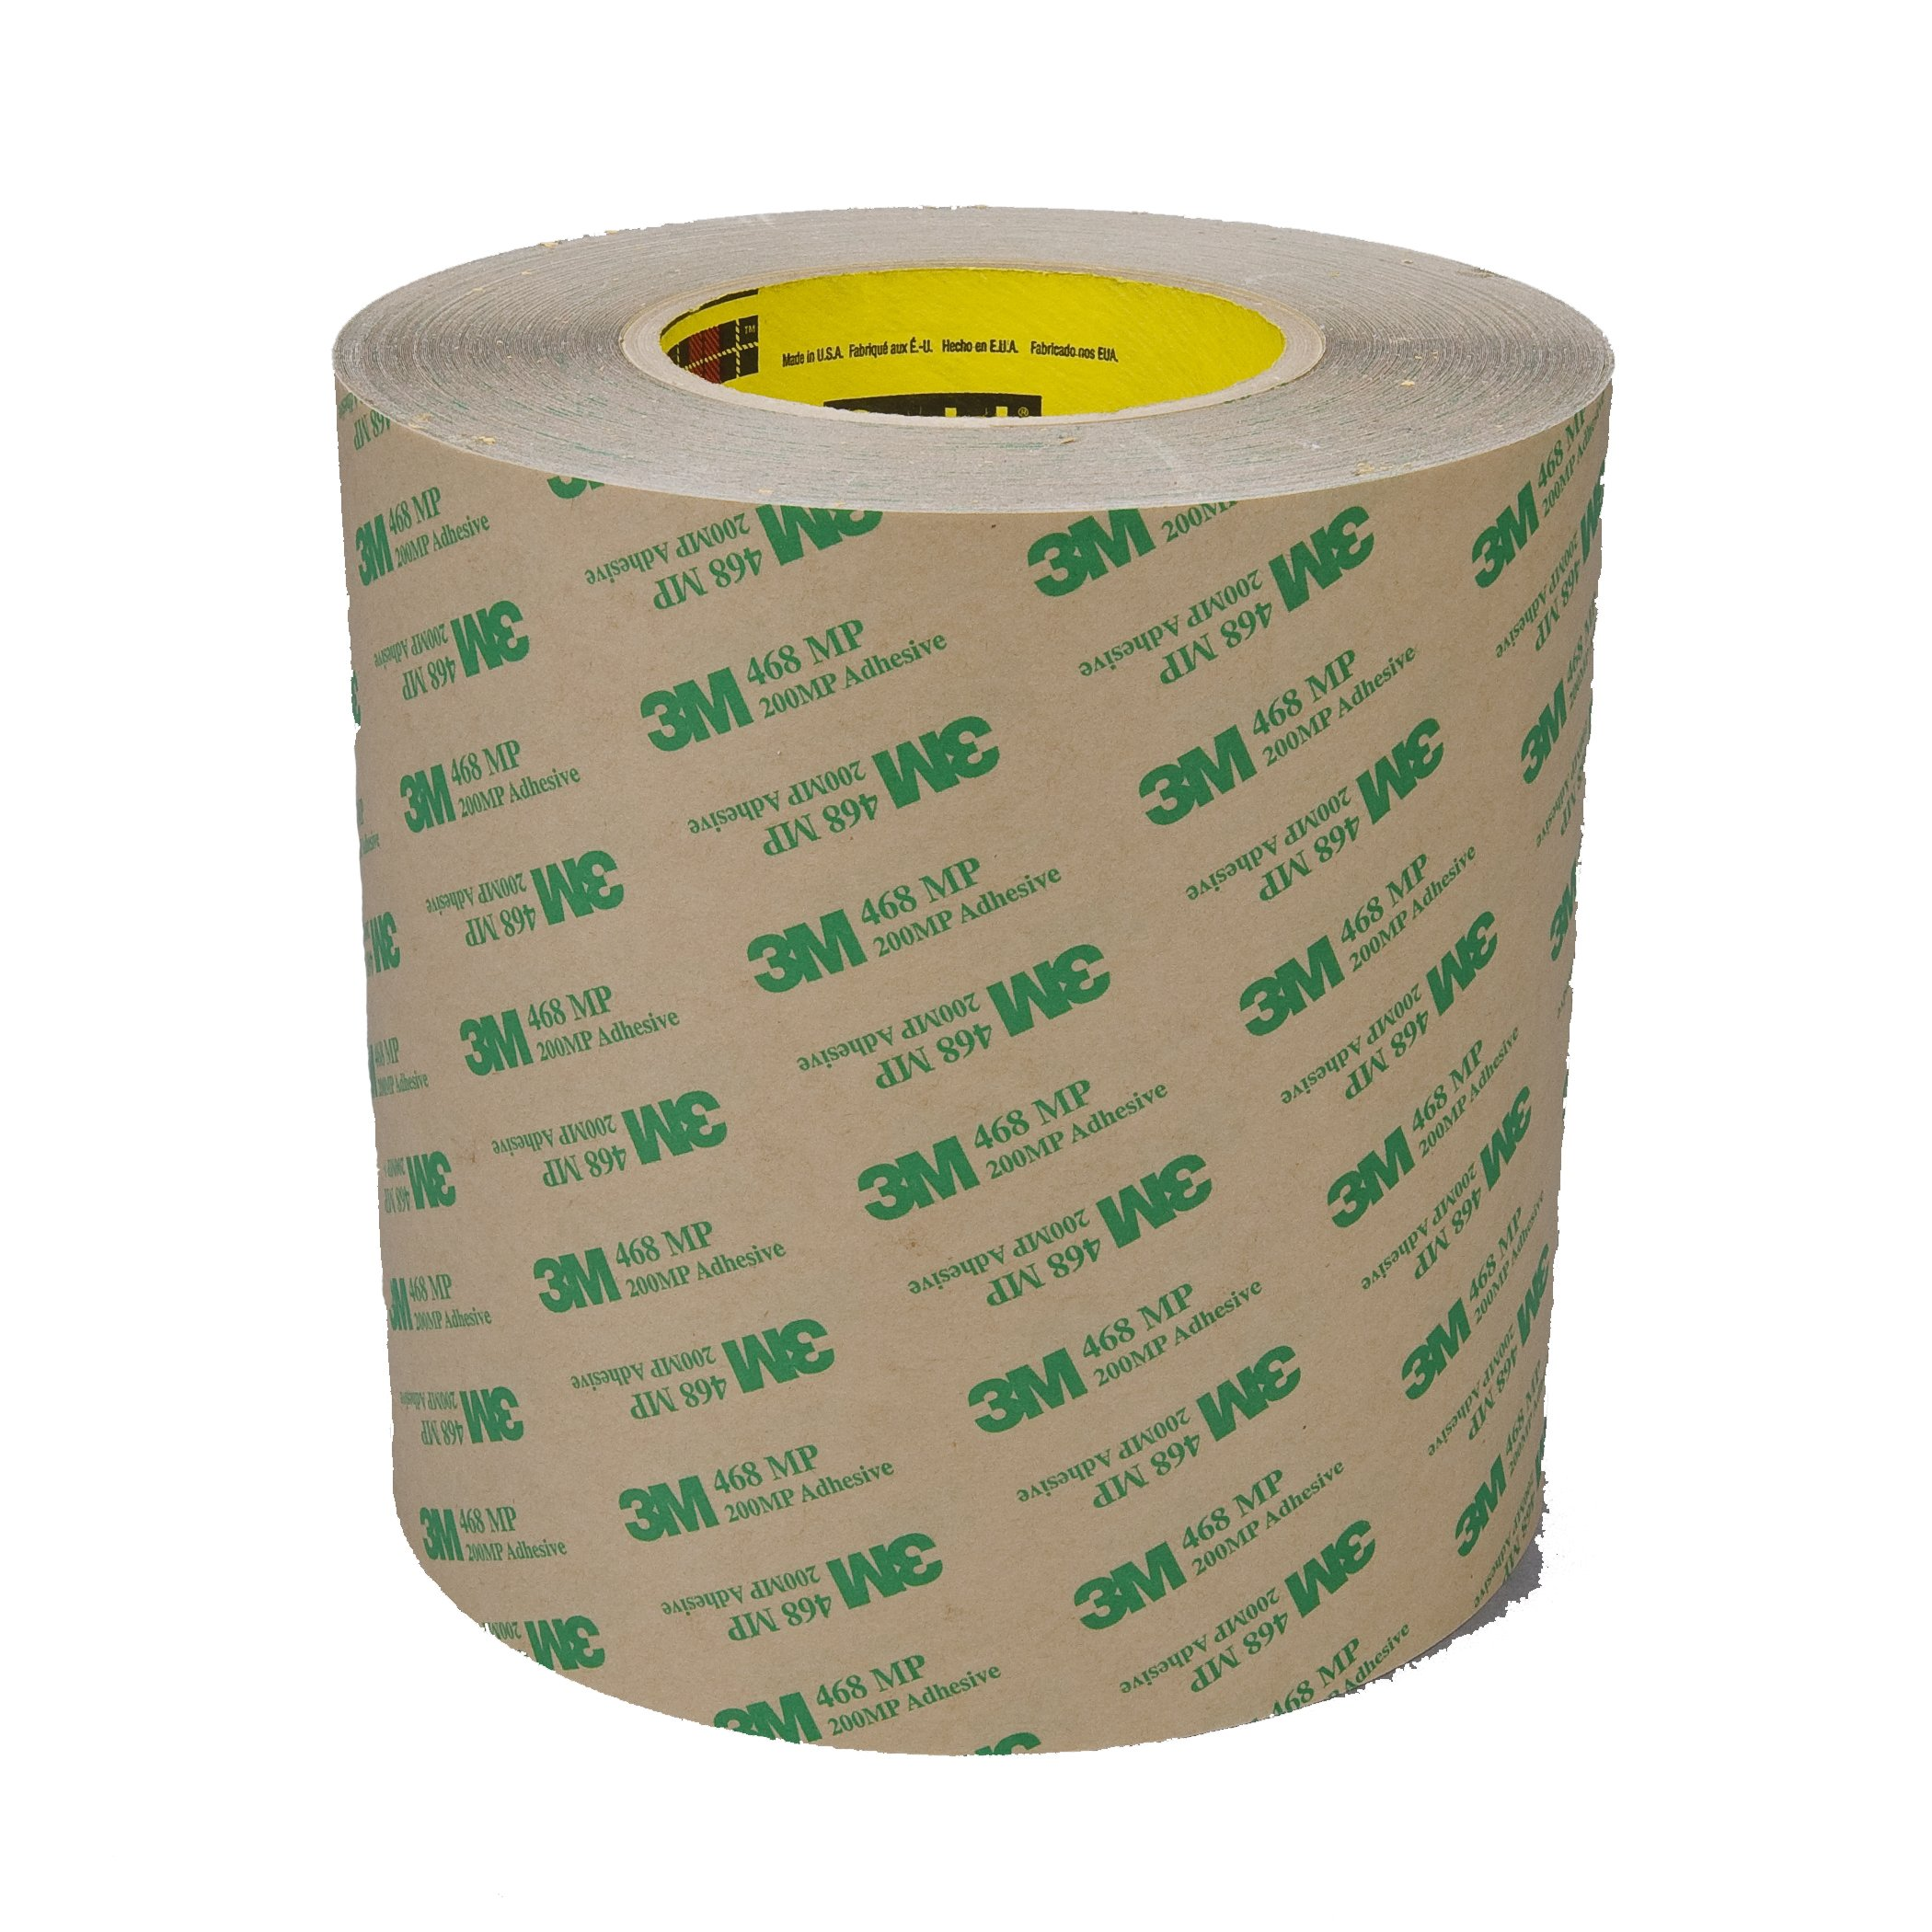 3M Adhesive Transfer Tape 468MP Clear, 24 in x 60 yd 5.0 mil (Pack of 1)